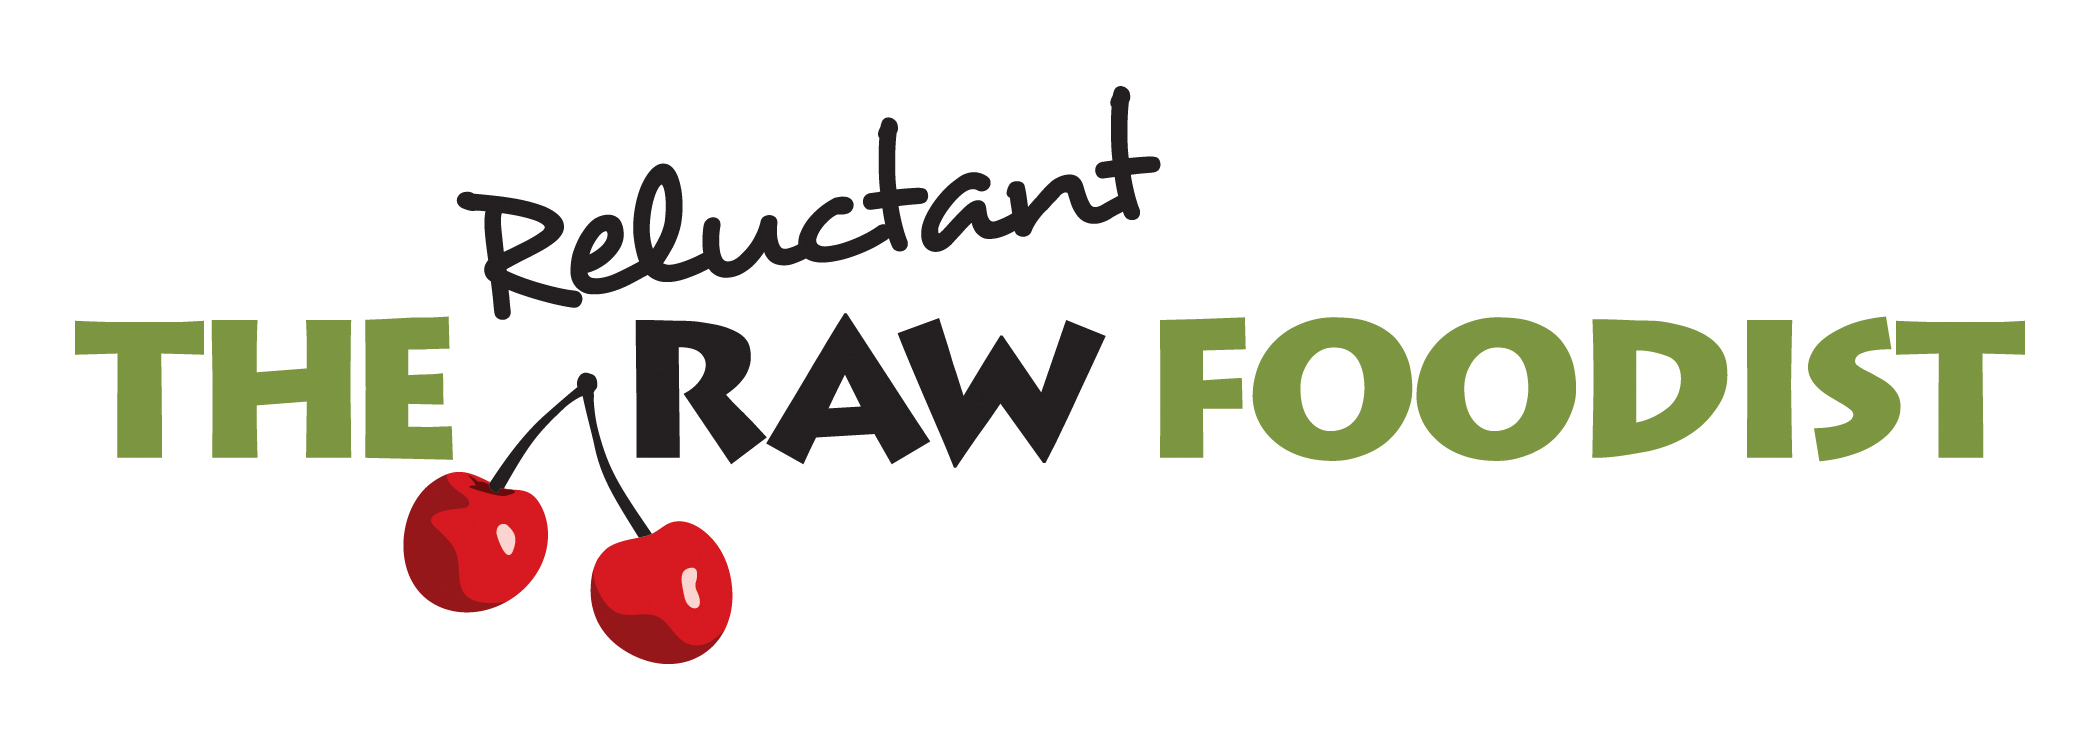 The Reluctant Raw Foodist